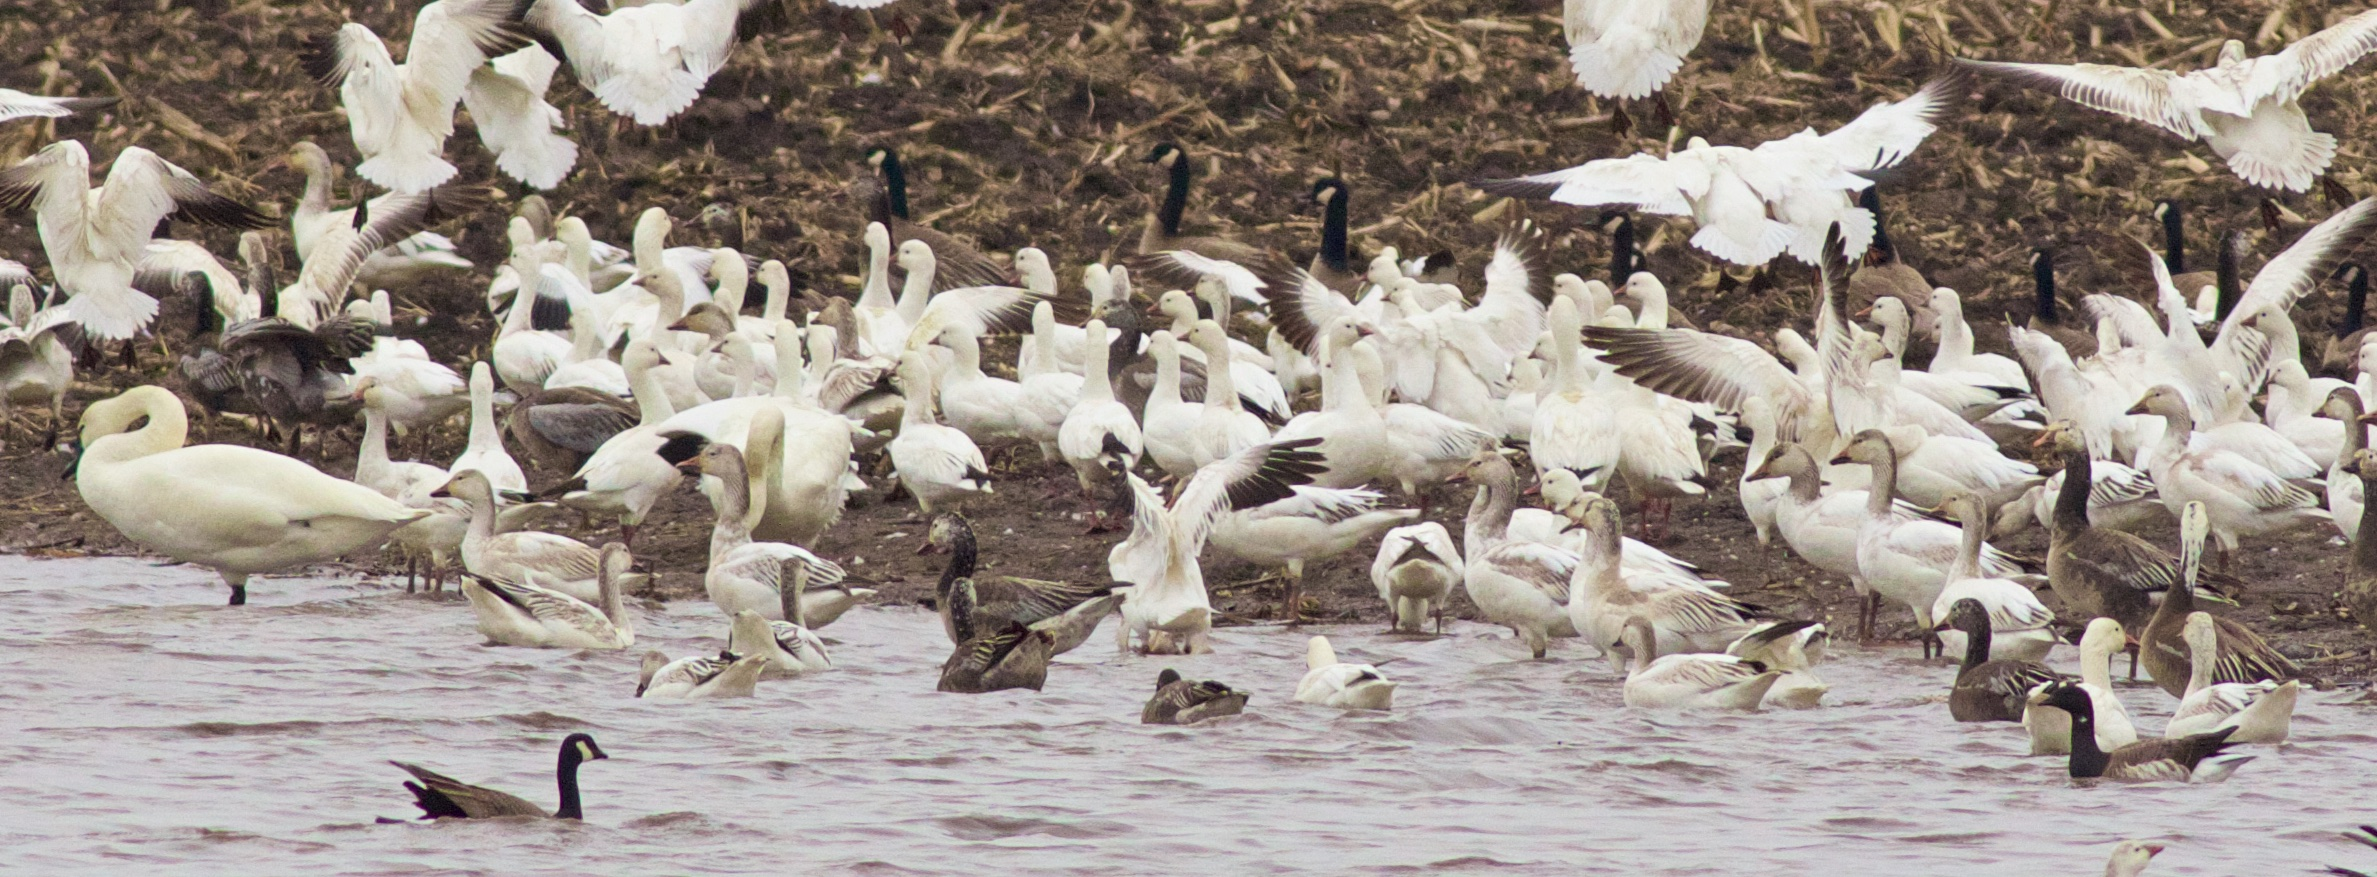 Five species of Geese:Brant, Ross's, Snow, Cackling, Canada; Photography by Arlene Koziol